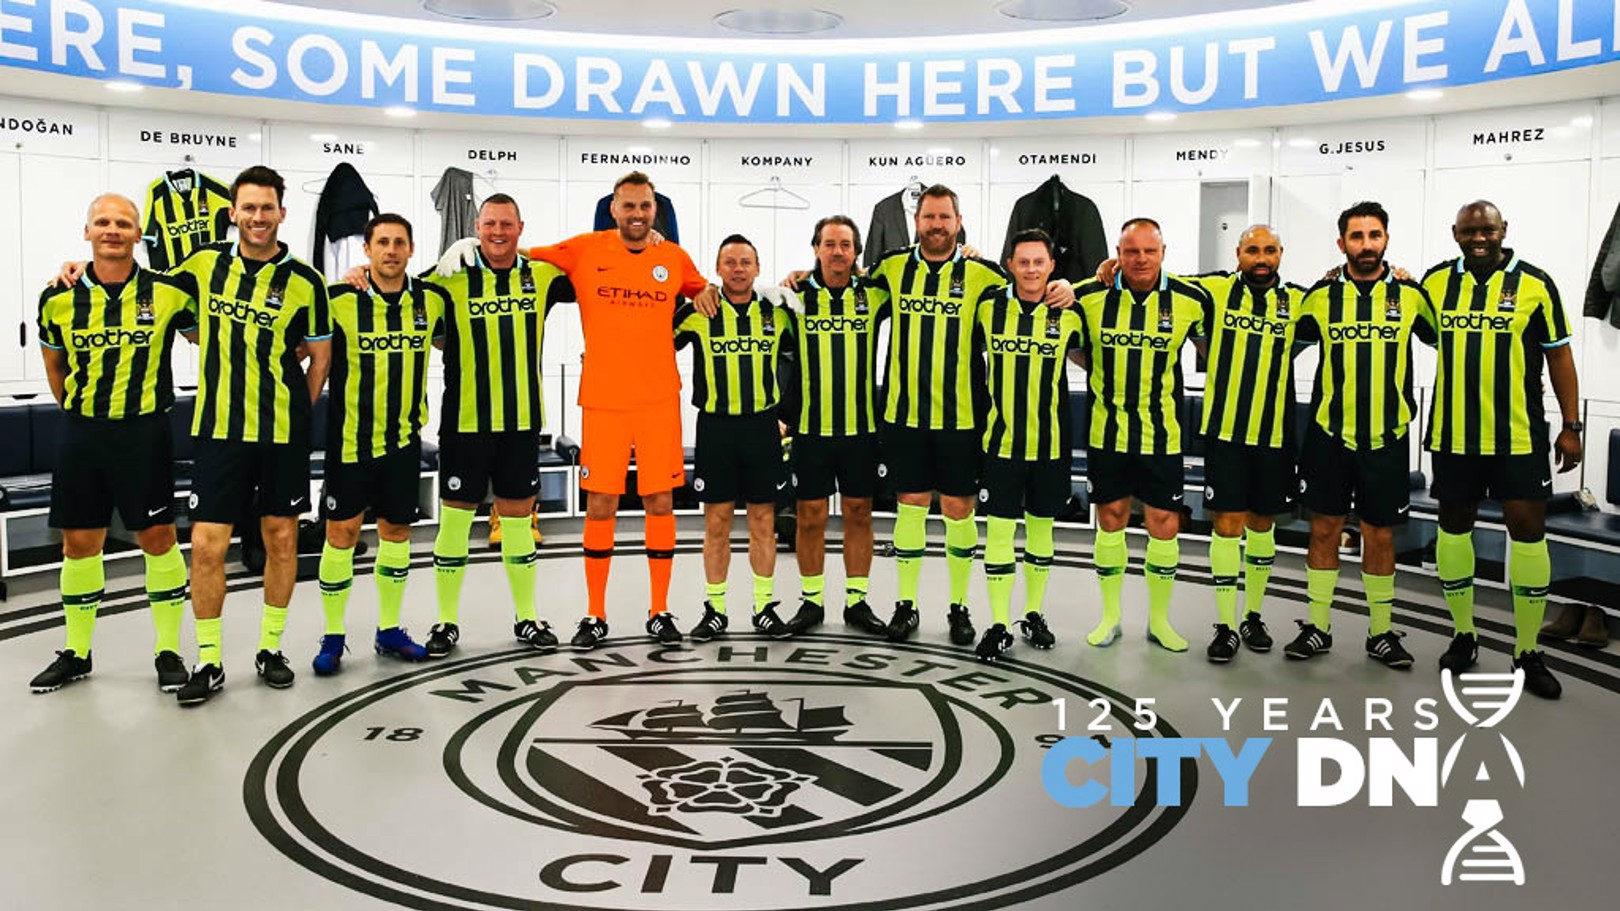 City DNA #10: Sponsors - From Saab to Etihad